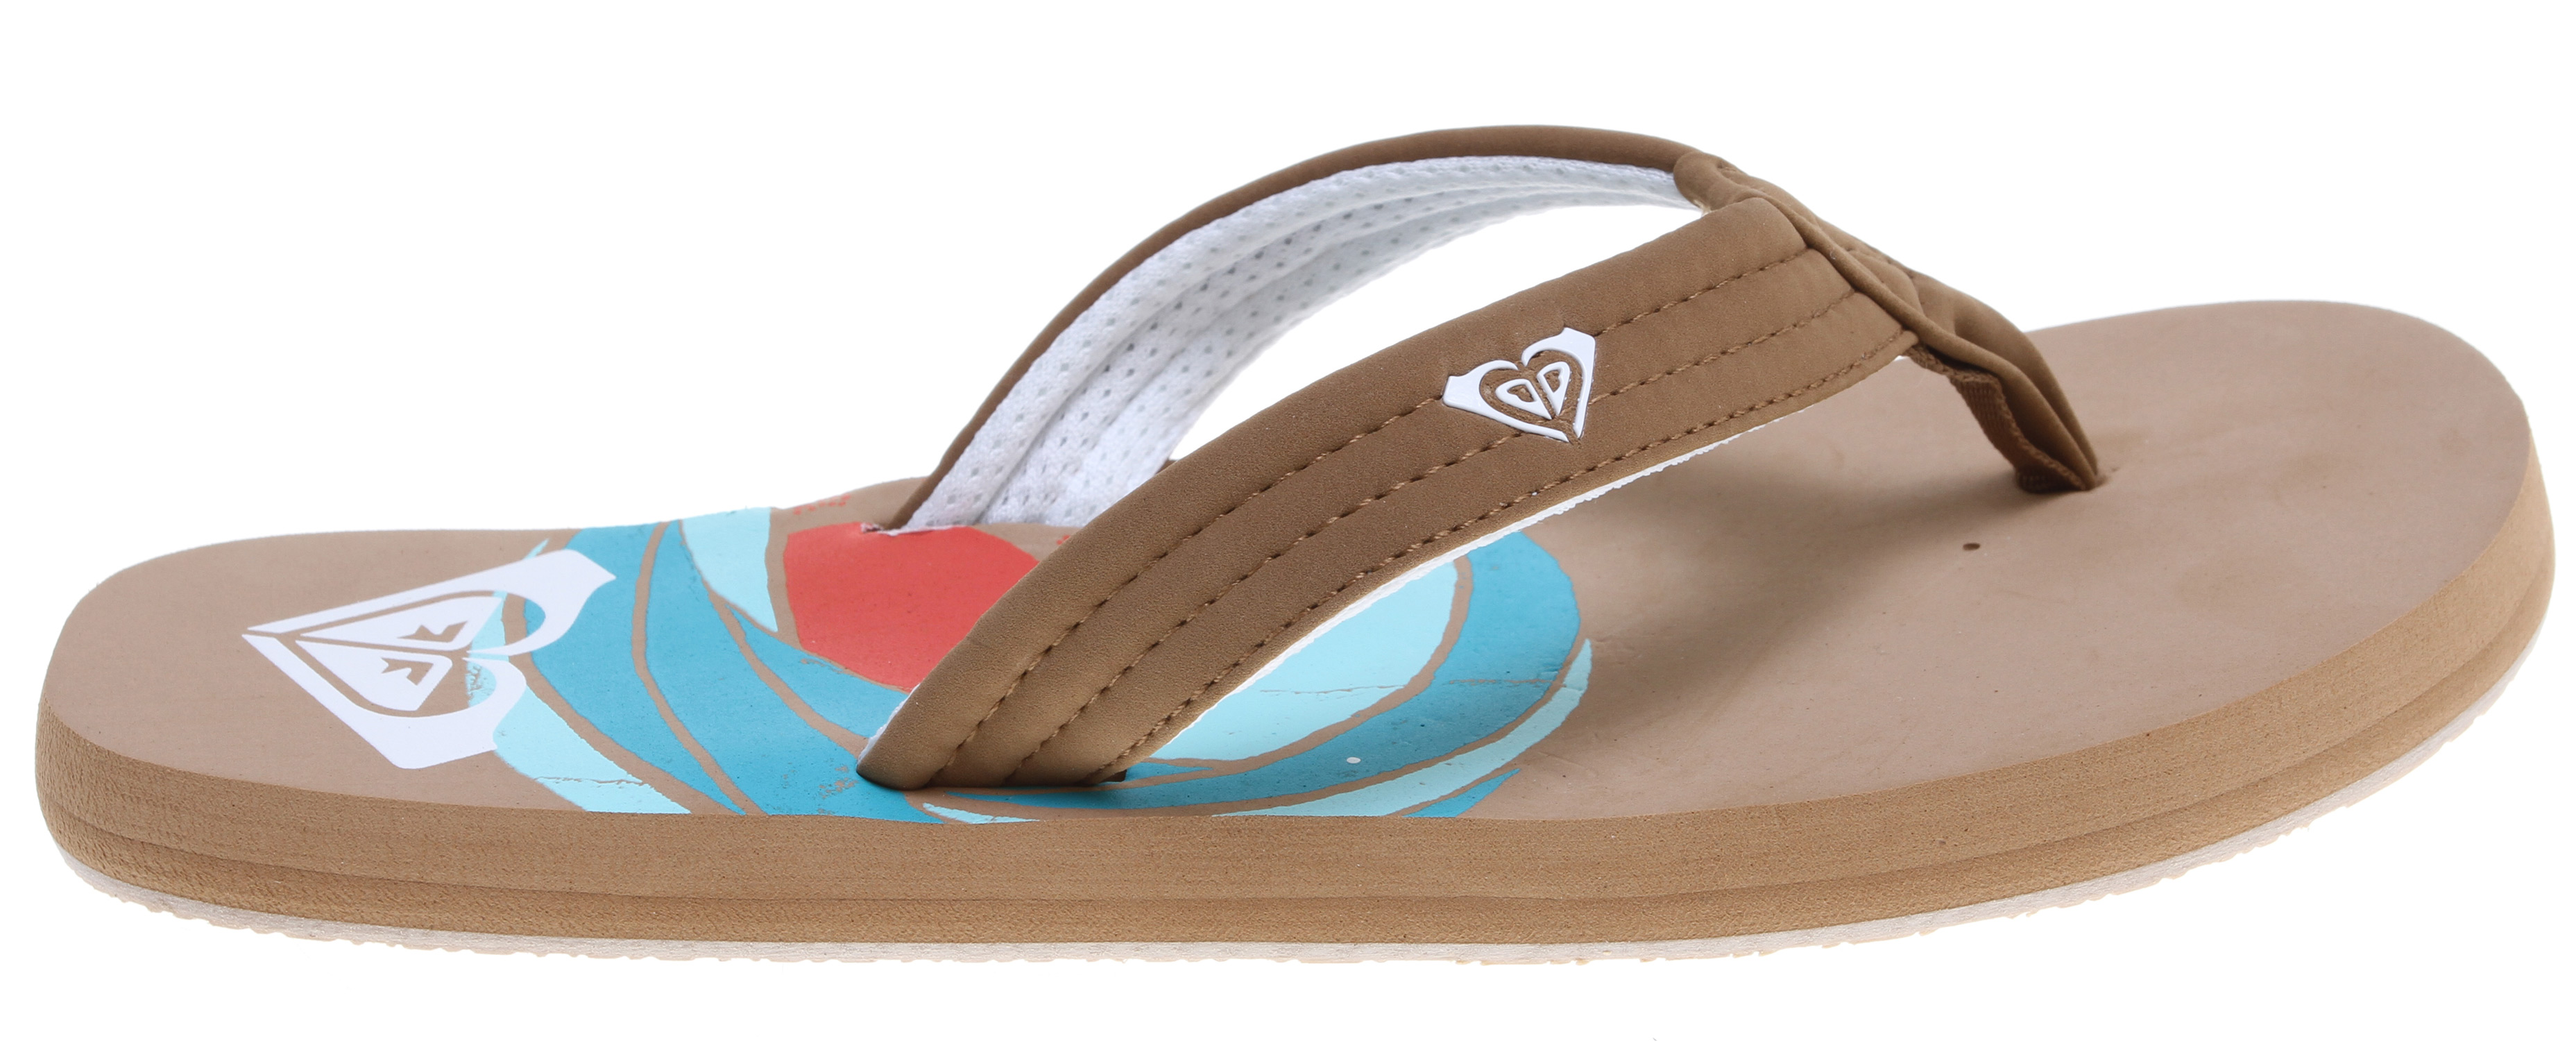 Surf Low tide, high tide, and everything in between! Our Low Tide Sandals are perfect for beach days and trips to the pool! Designed from water-friendly synthetic nubuck, we added a soft poly-web lining and an 'active foam' footbed and arch support. Sweet and sporty, just how we love our cool flip flops! Key Features of the Roxy Low Tide Sandals: Soft gel printing Rubber outsole Imported. - $15.95